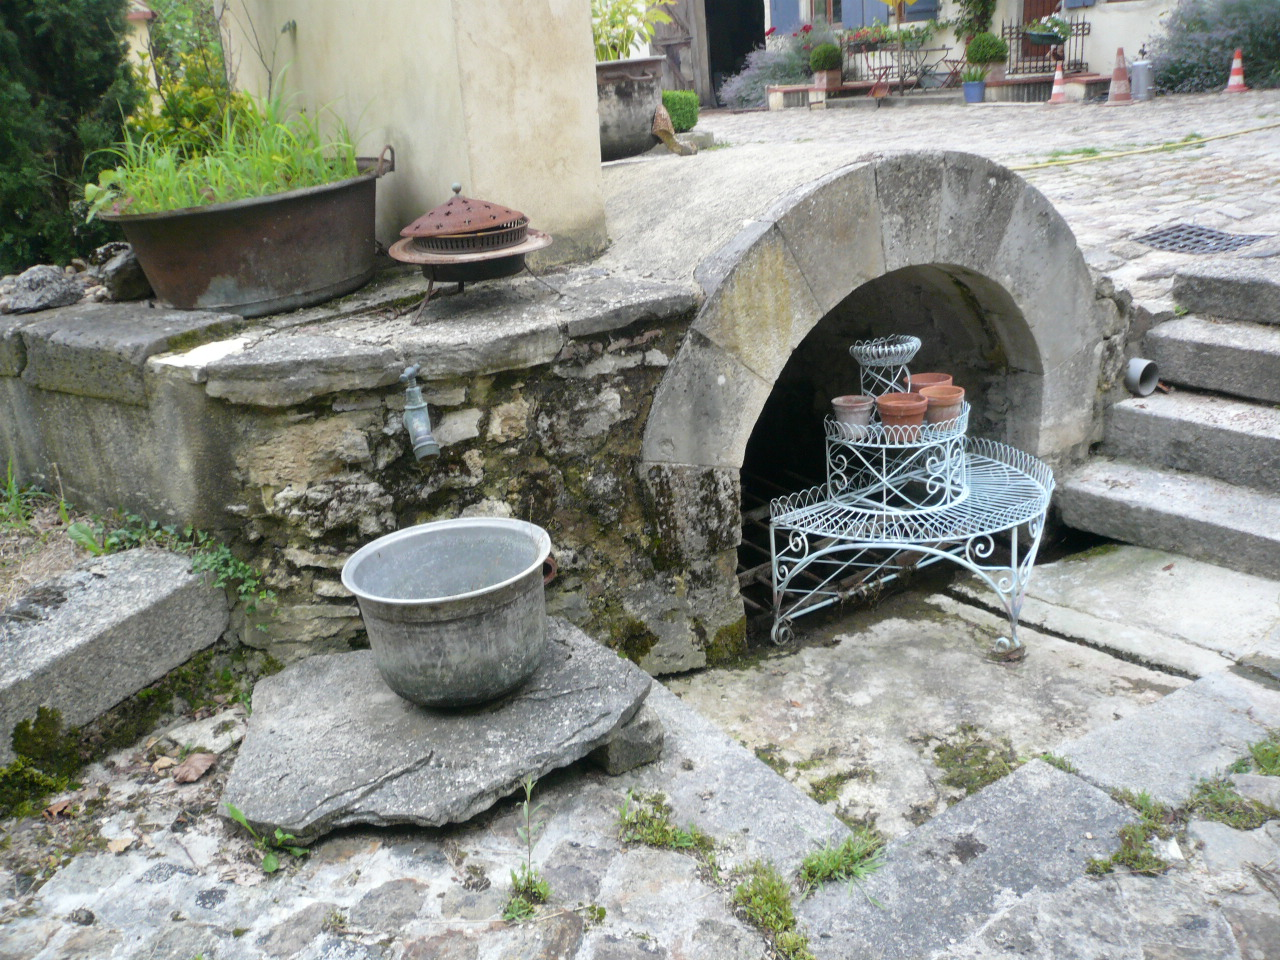 Une fontaine ancienne